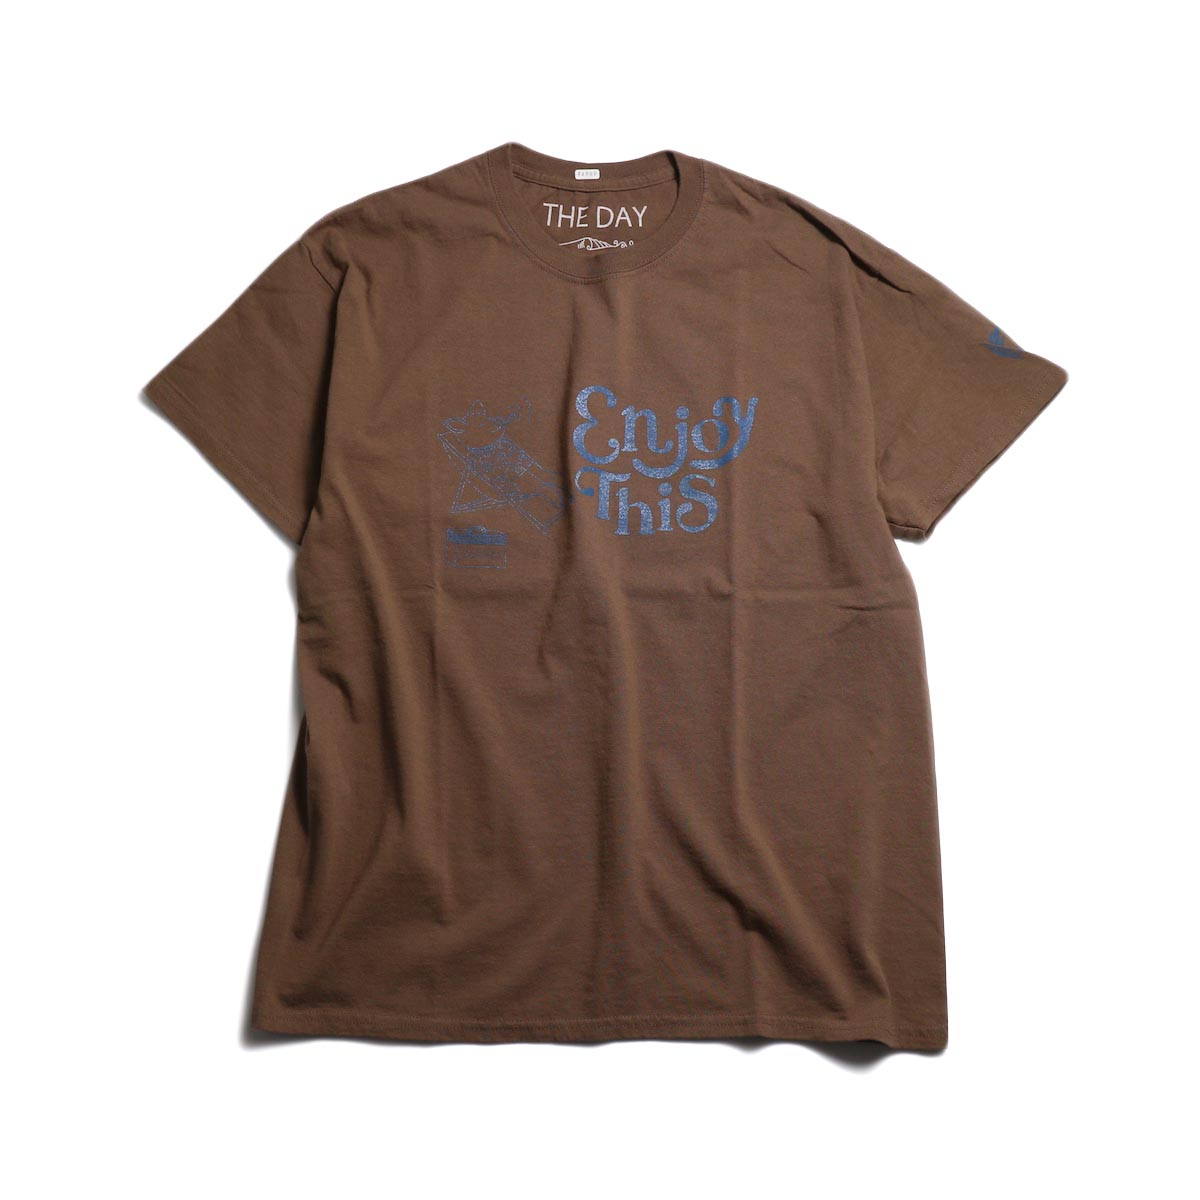 THE DAY ON THE BEACH / Enjoy This Tee -Chestnut